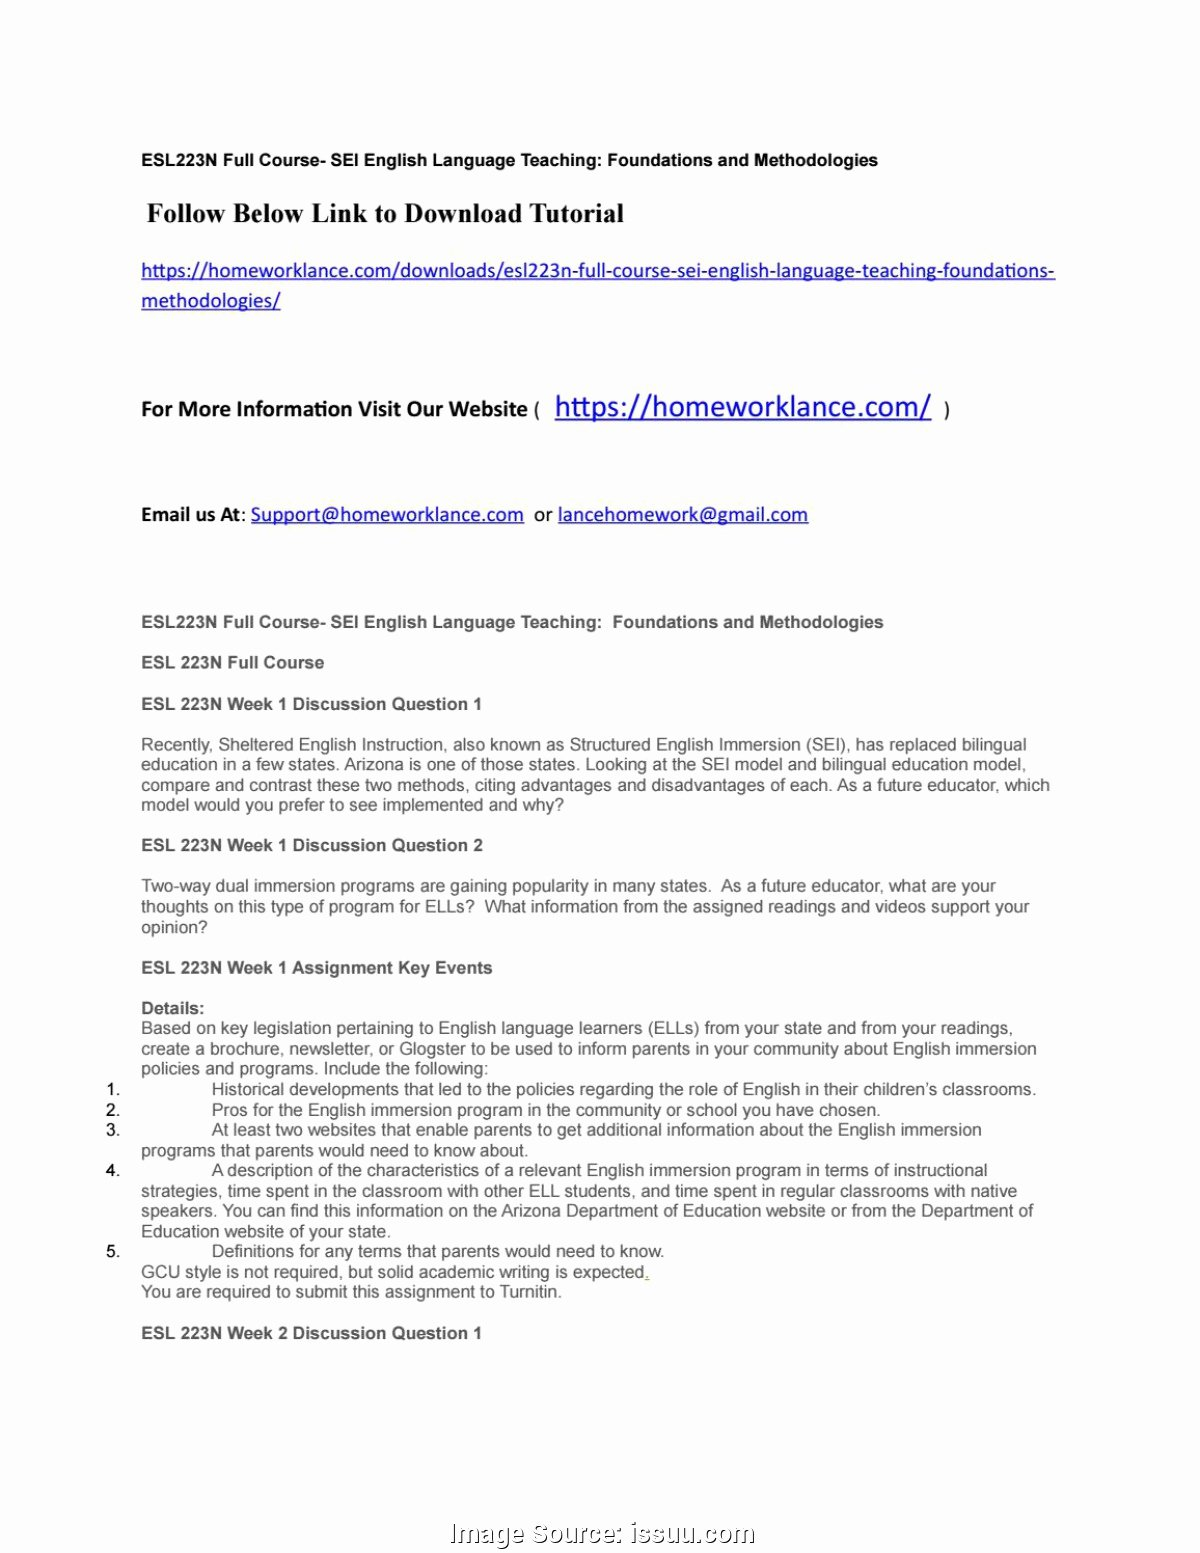 Siop Model Lesson Plan New Excellent Sample Lesson Plan format Pdf Free Daily Lesson